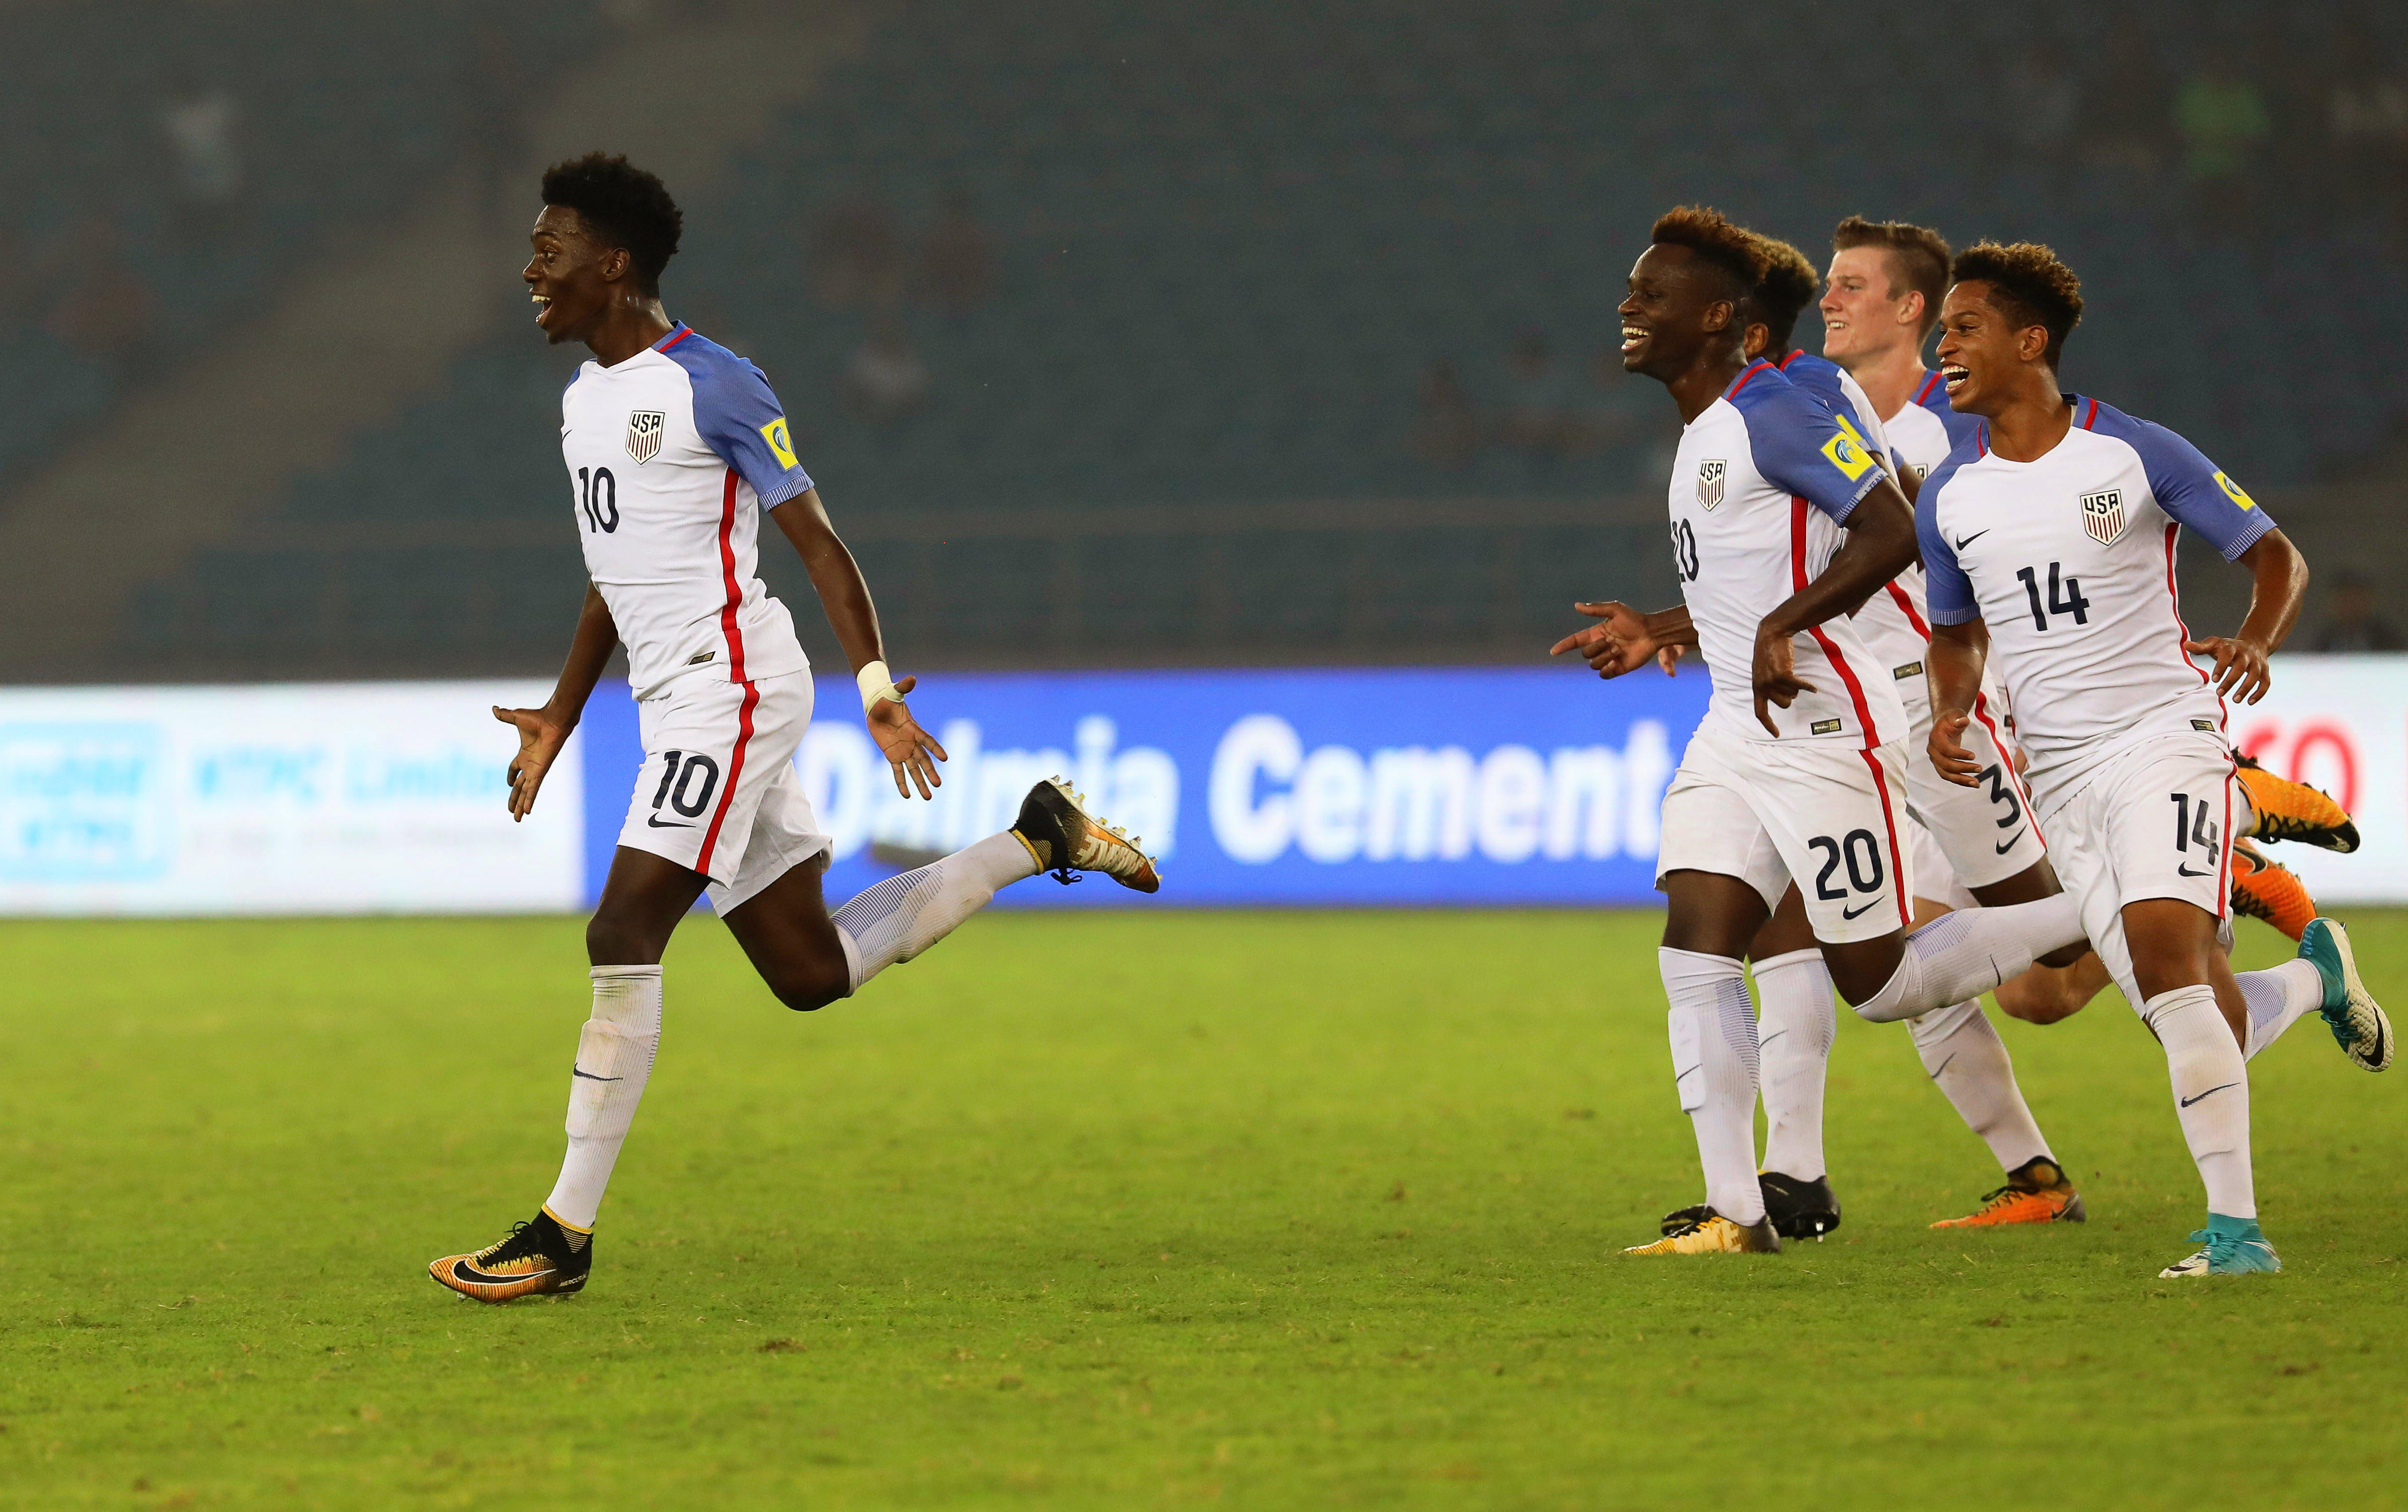 Weah looks like a future star for USA